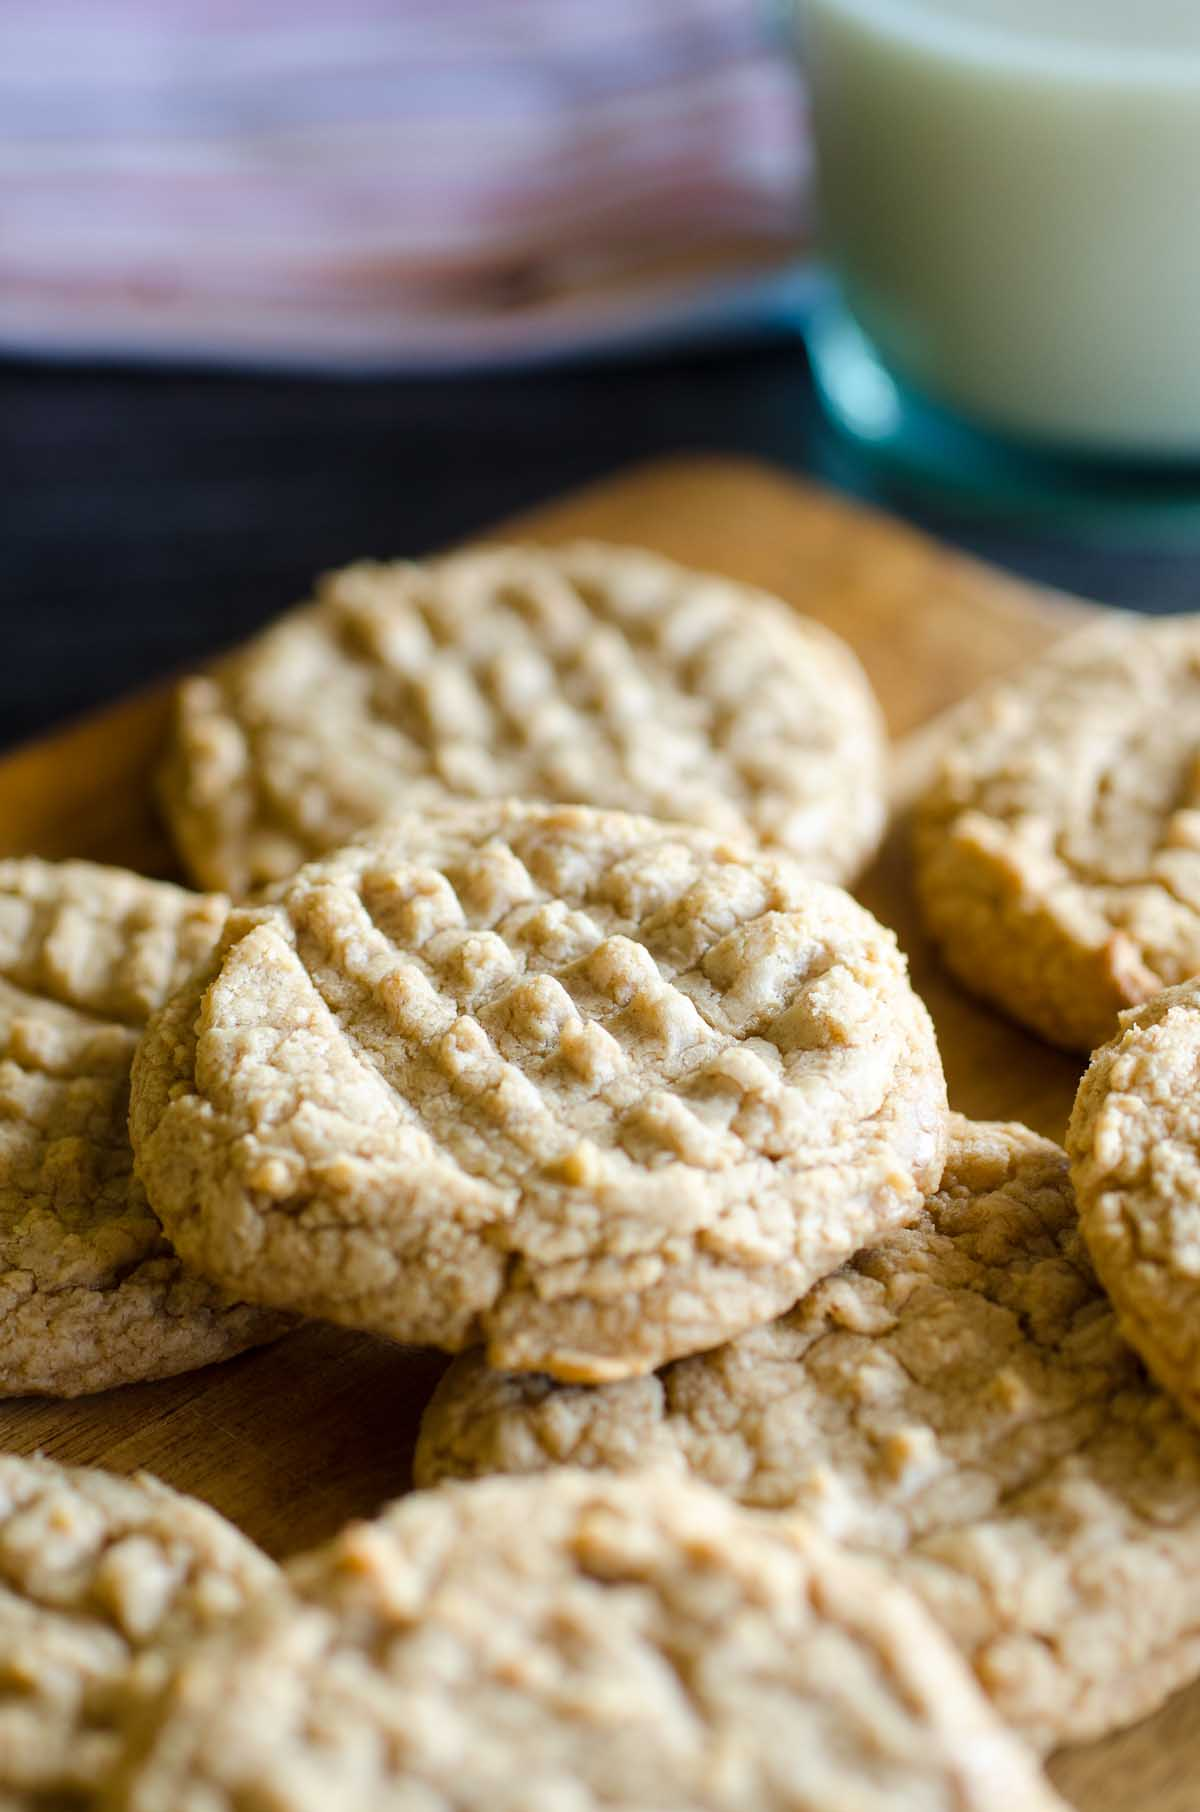 peanut butter cookies layered on serving platter